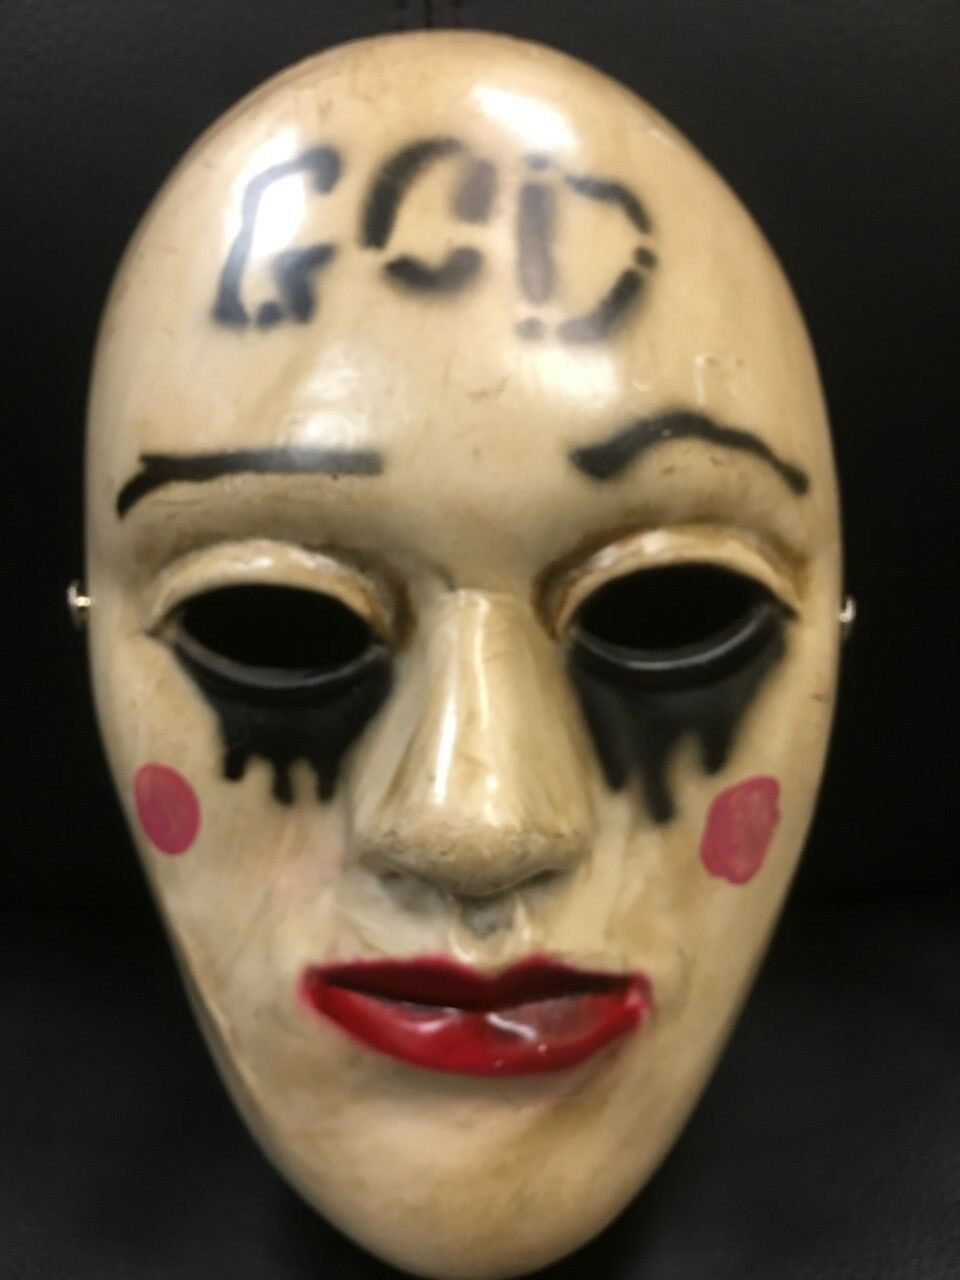 THE PURGE GOD FIBREGLASS MASK ADULT MOVIE FANCY DRESS UP ANARCHY ELECTION YEAR 2